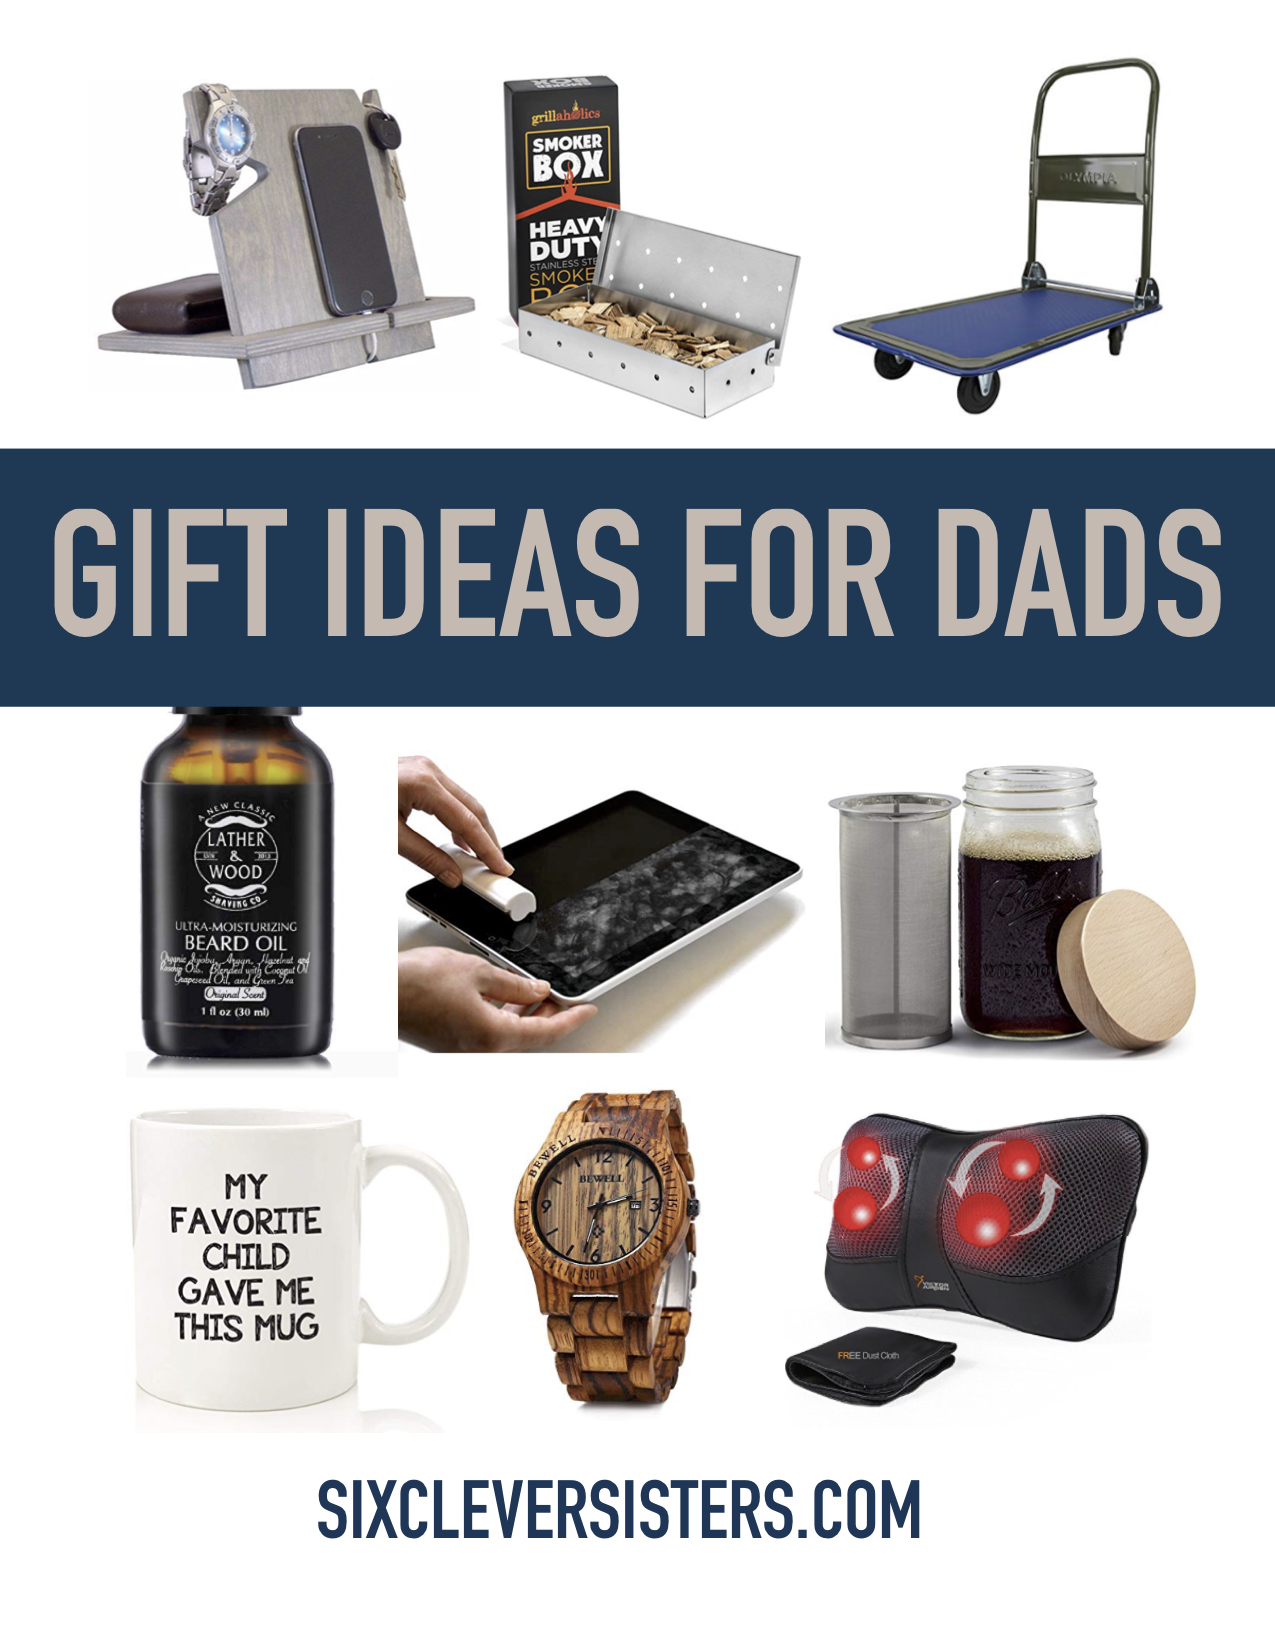 Dad Holiday Gift Guide Find That Perfect Christmas Gift For Dads Of All Ages Six Clever Sisters